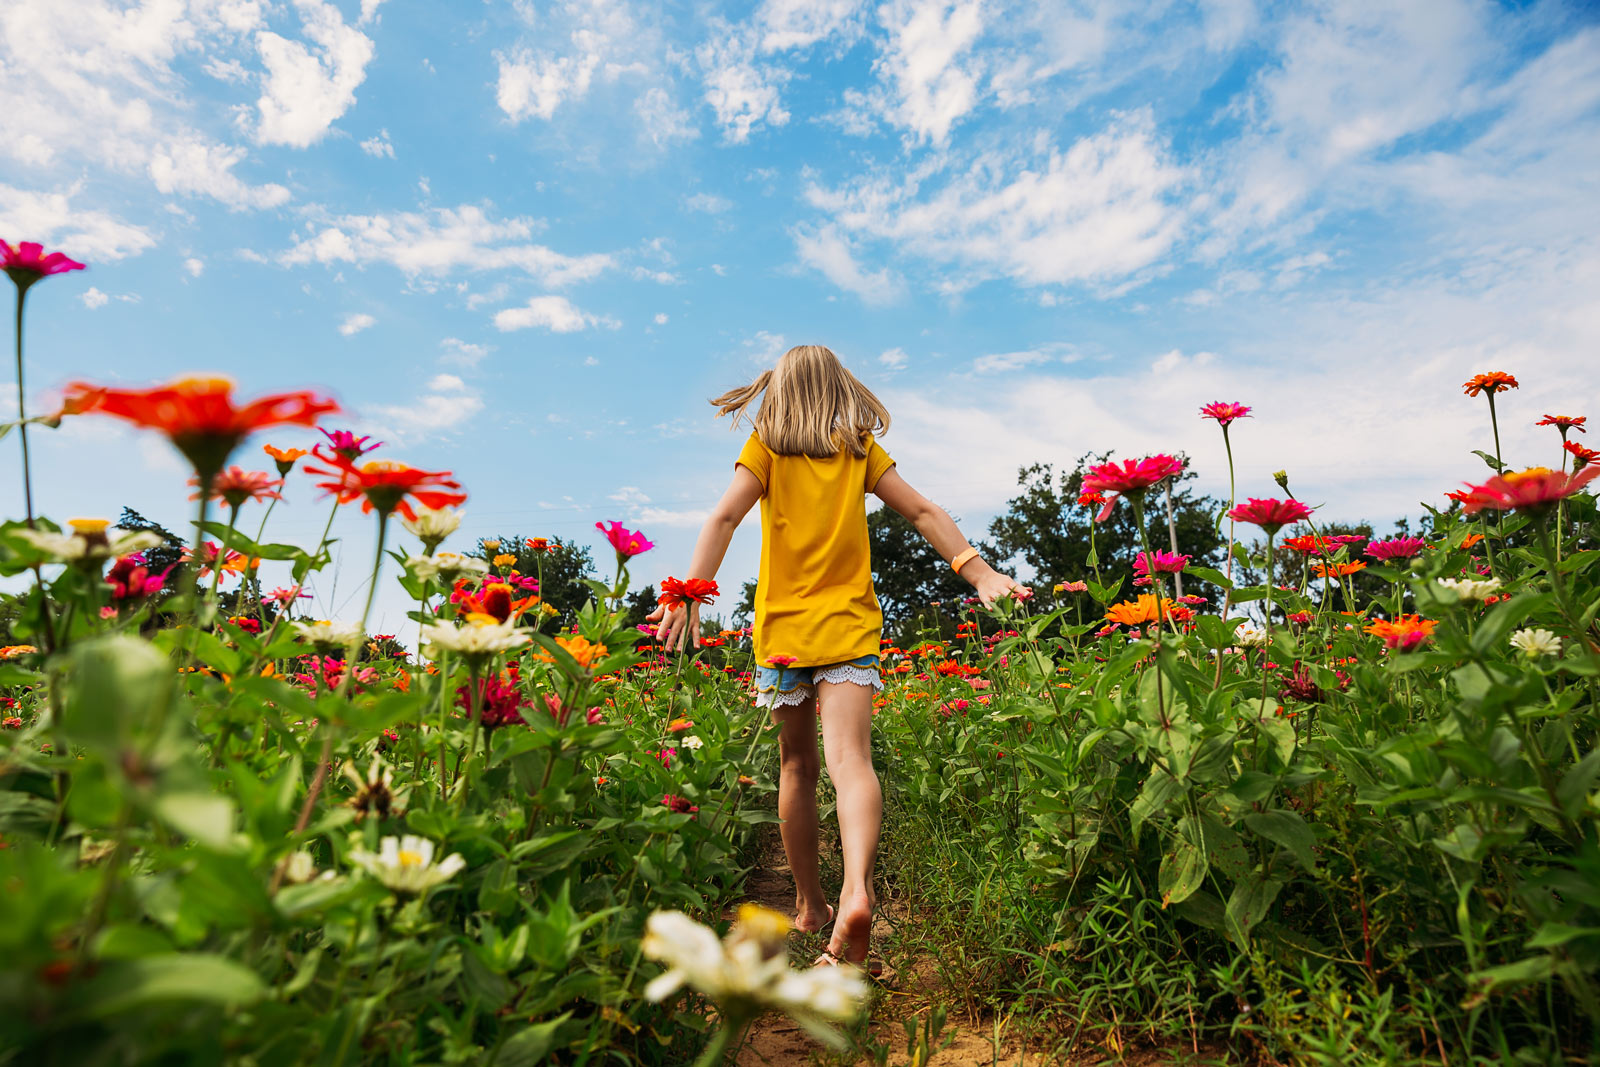 Girl walking through flower field with dramatic blue sky background